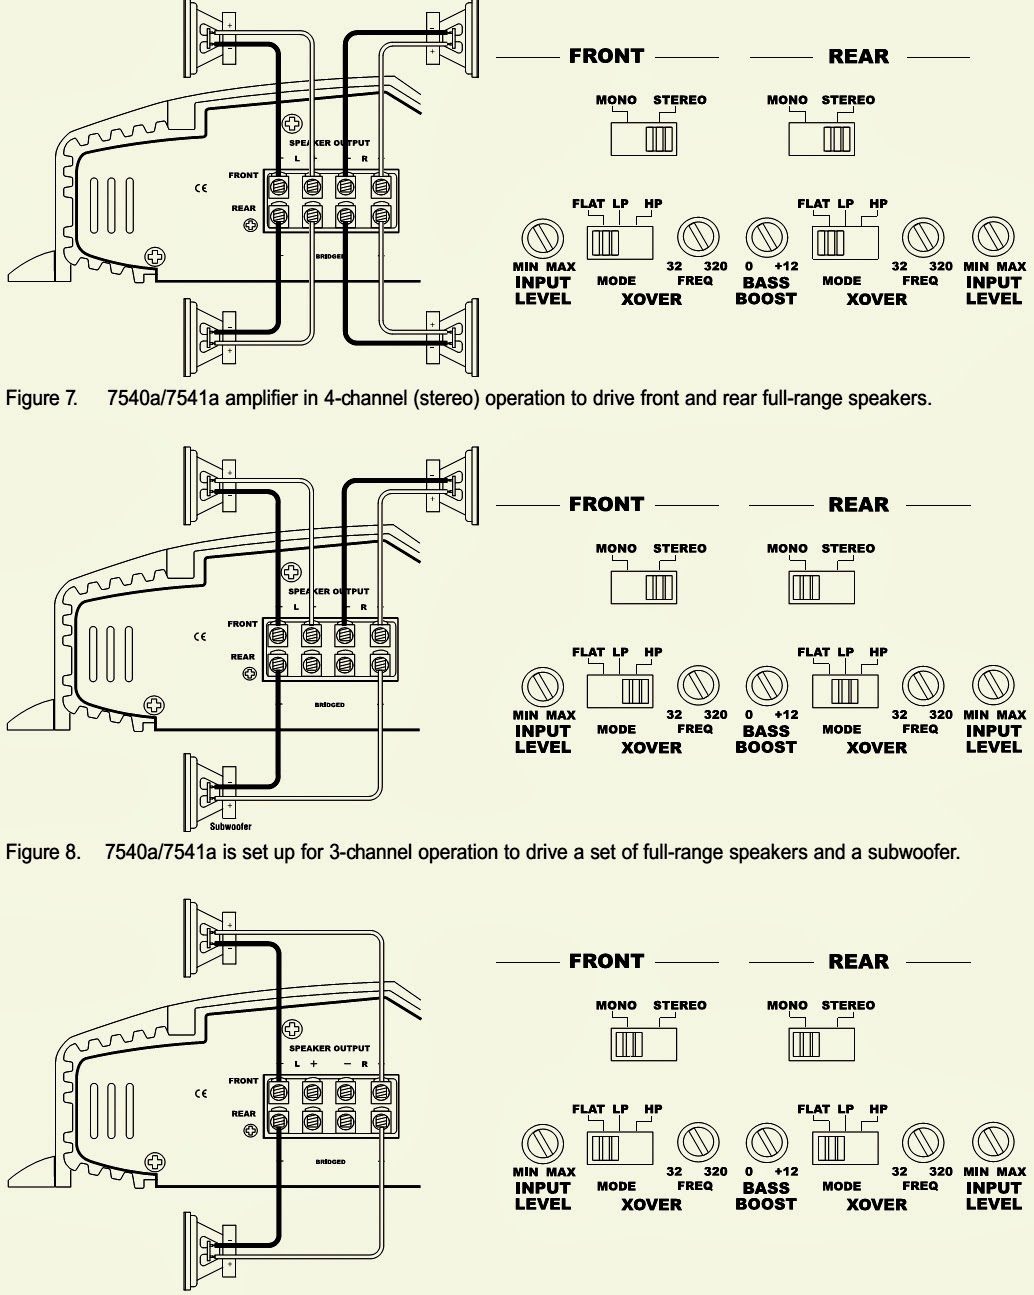 chrysler infinity amp wiring diagram infinity amplifier wiring diagram infinity - 7540a_7541a - (4-channel) car amp - circuit ...